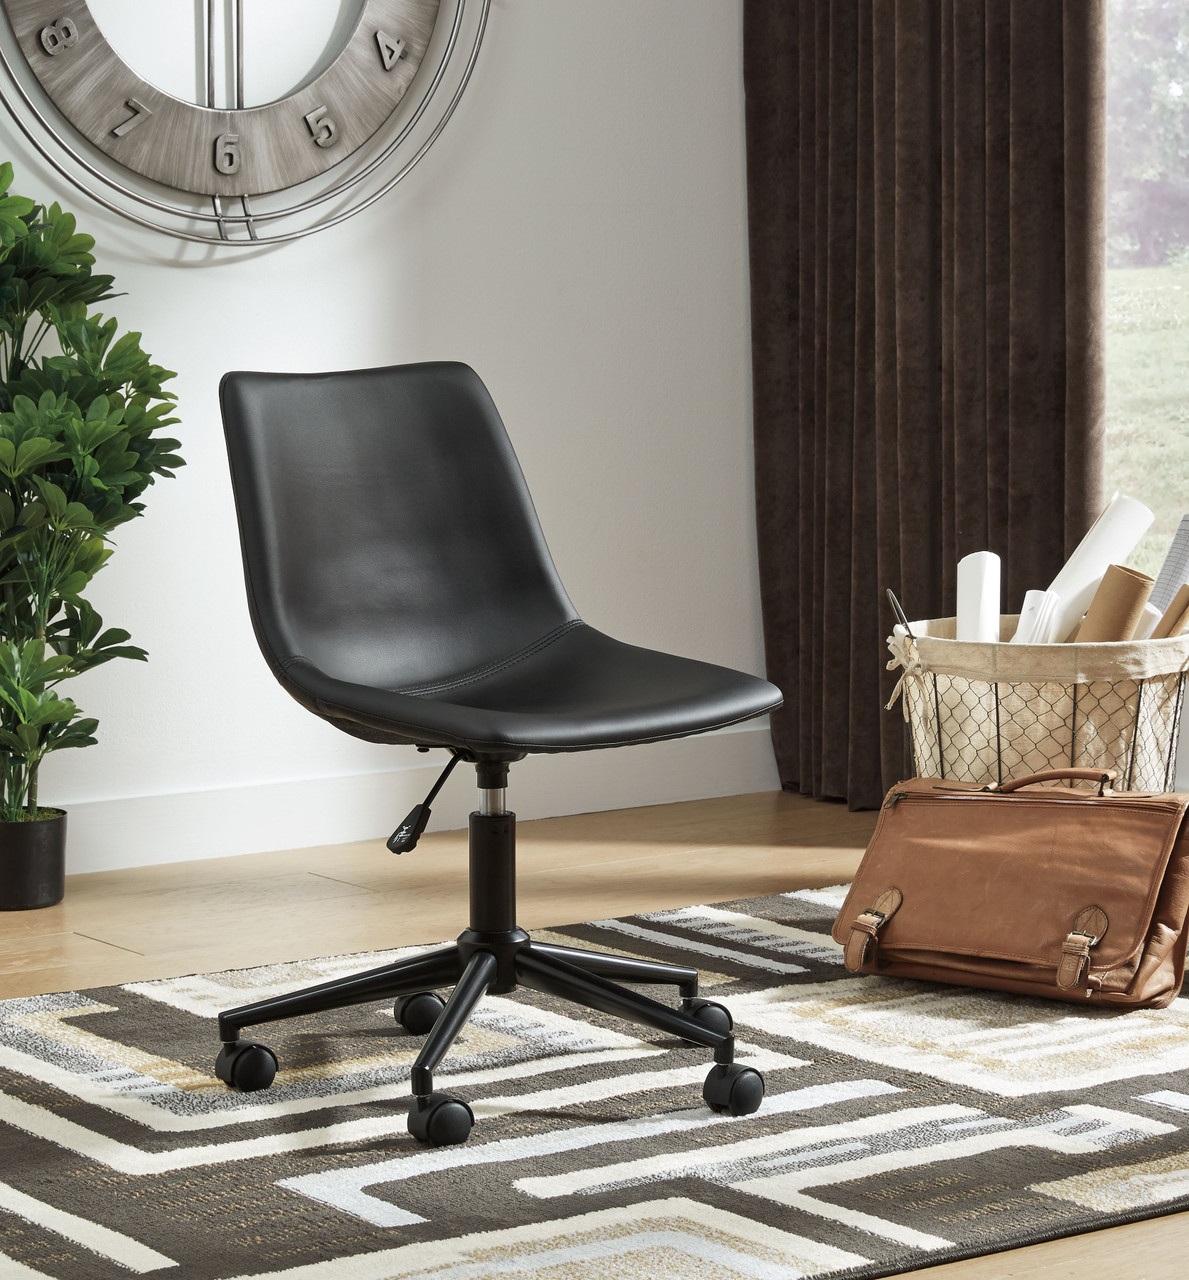 The Office Chair Program Black Home Office Swivel Desk Chair Available At Dayton Discount Furniture Serving Vandalia Kettering And Springfield Ohio